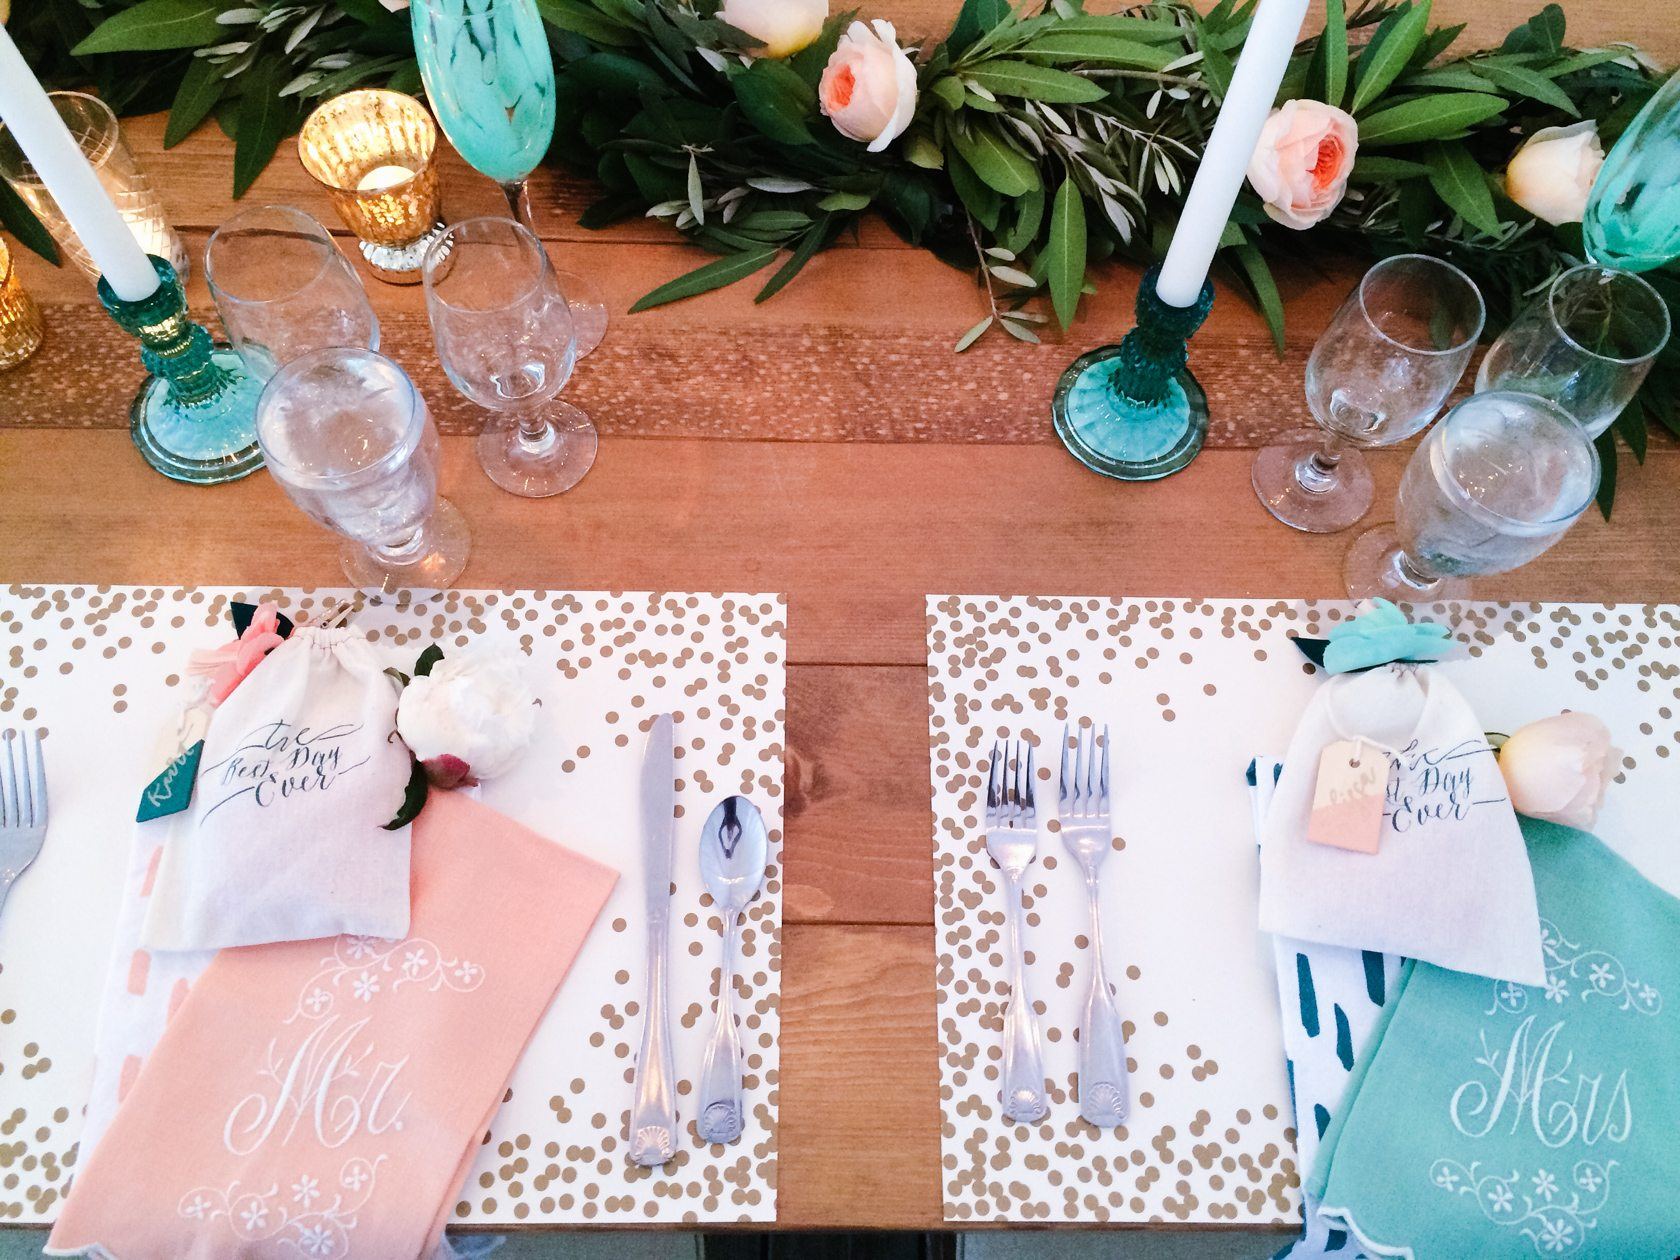 The_Printed_Palette_Wedding_at_Calamigos_Ranch_103.jpg